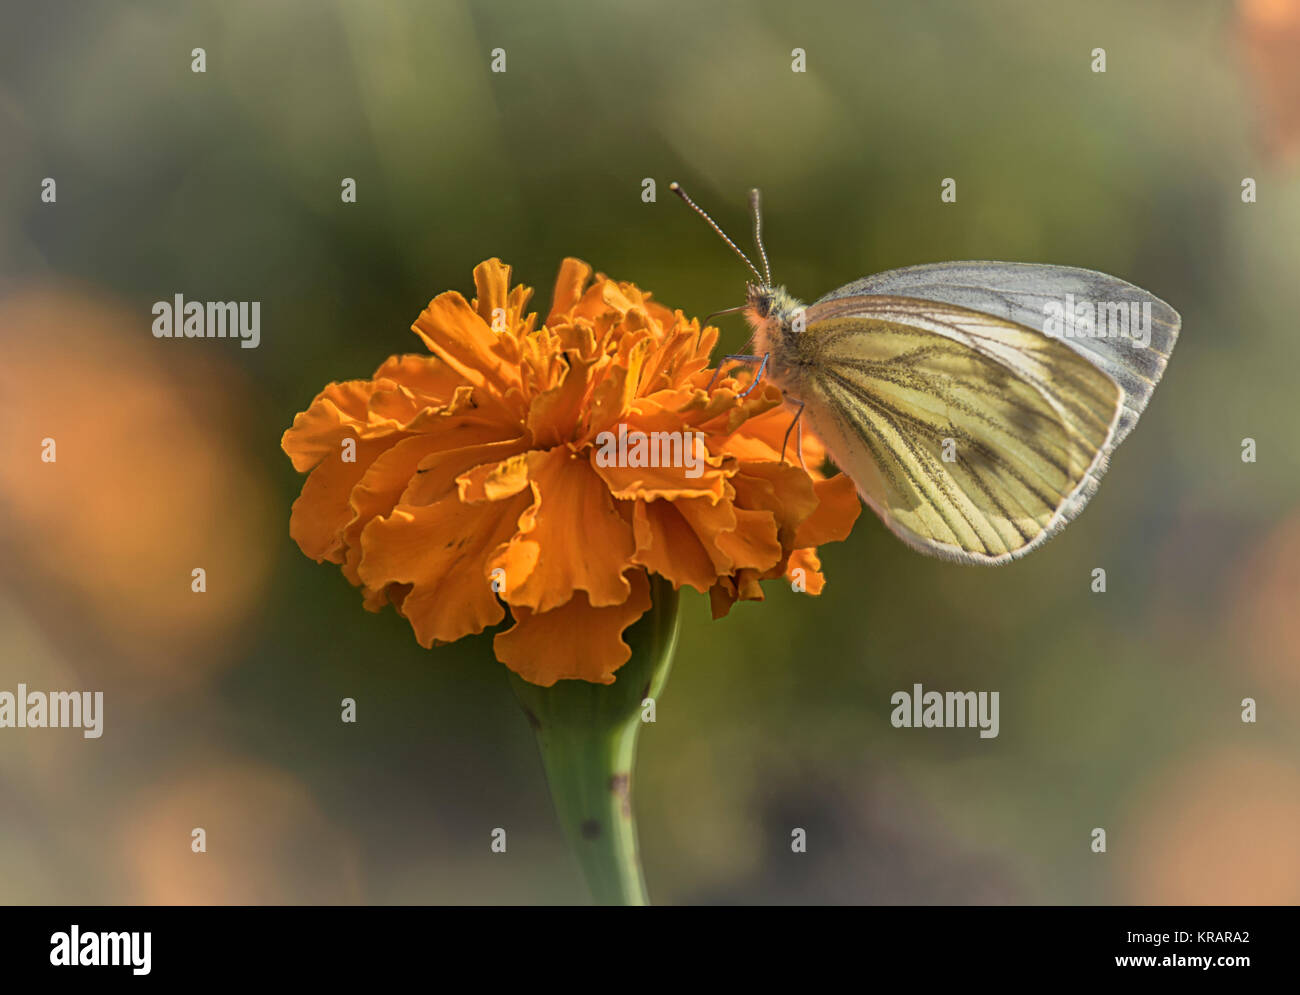 green core weisssling on carnation - Stock Image